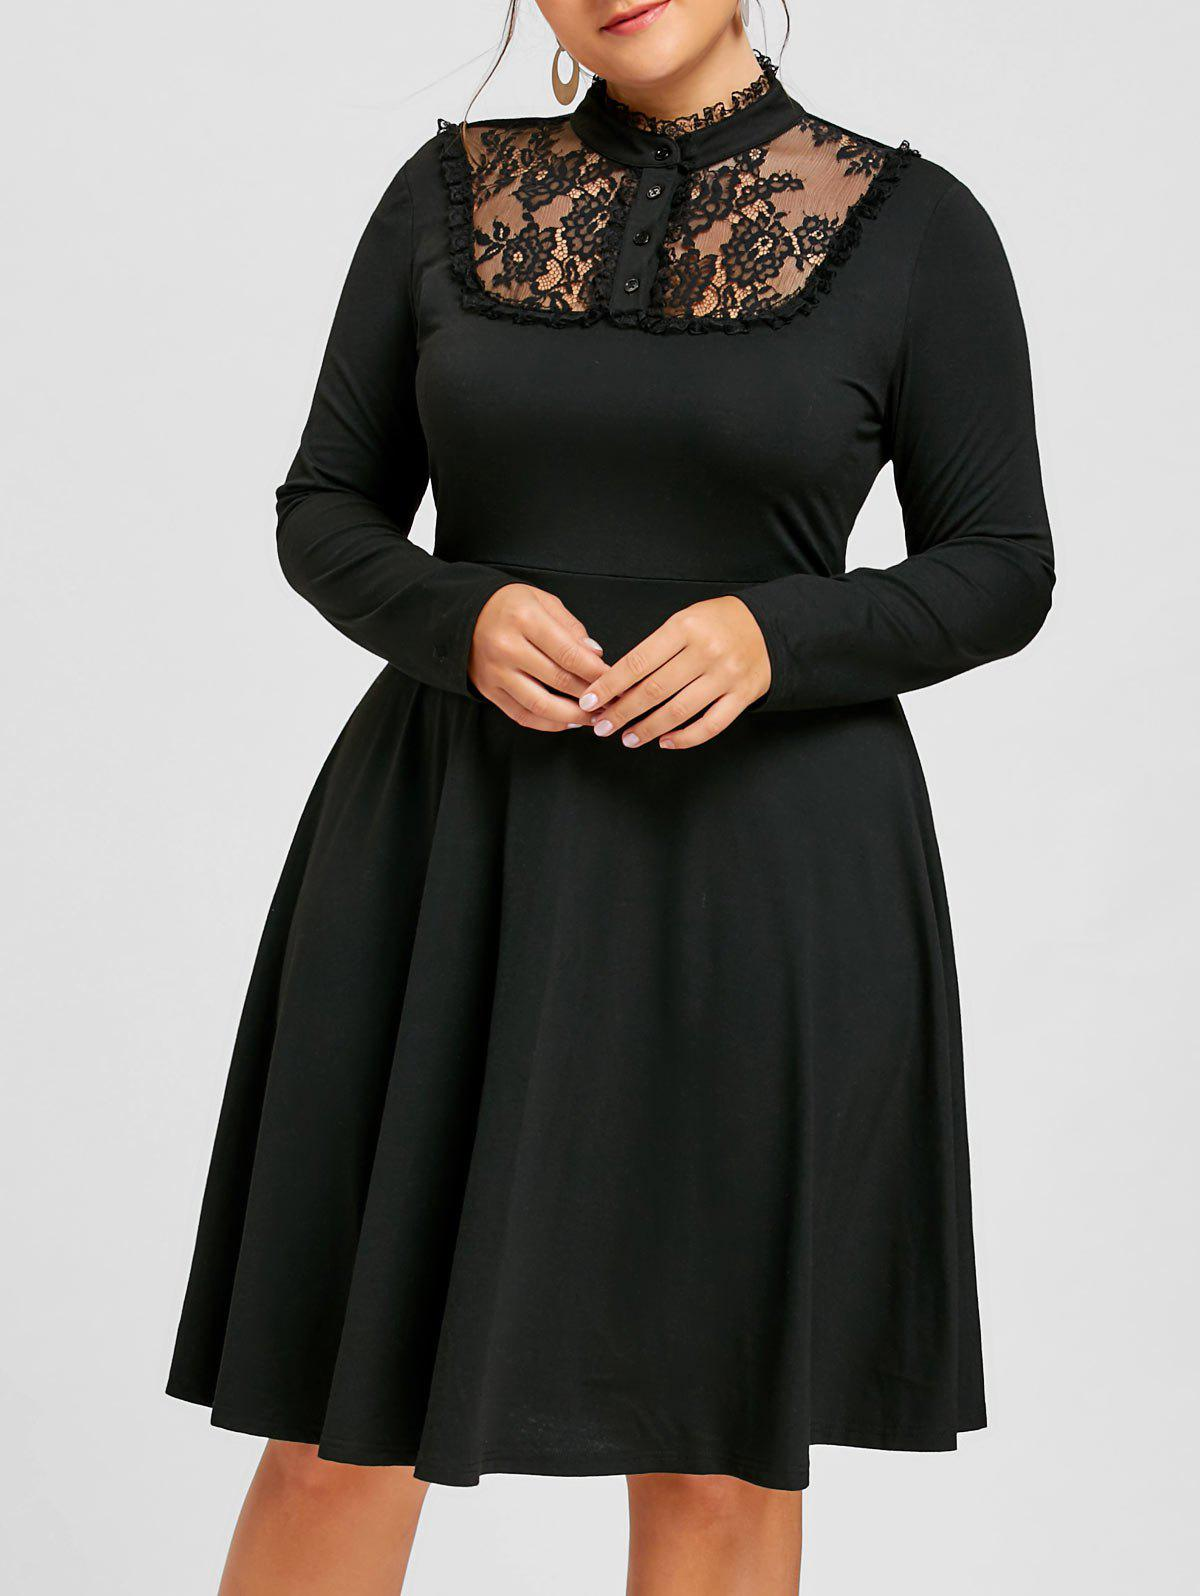 Plus Size Lace Up Fit and Flare Dress plus size lace up fit and flare dress